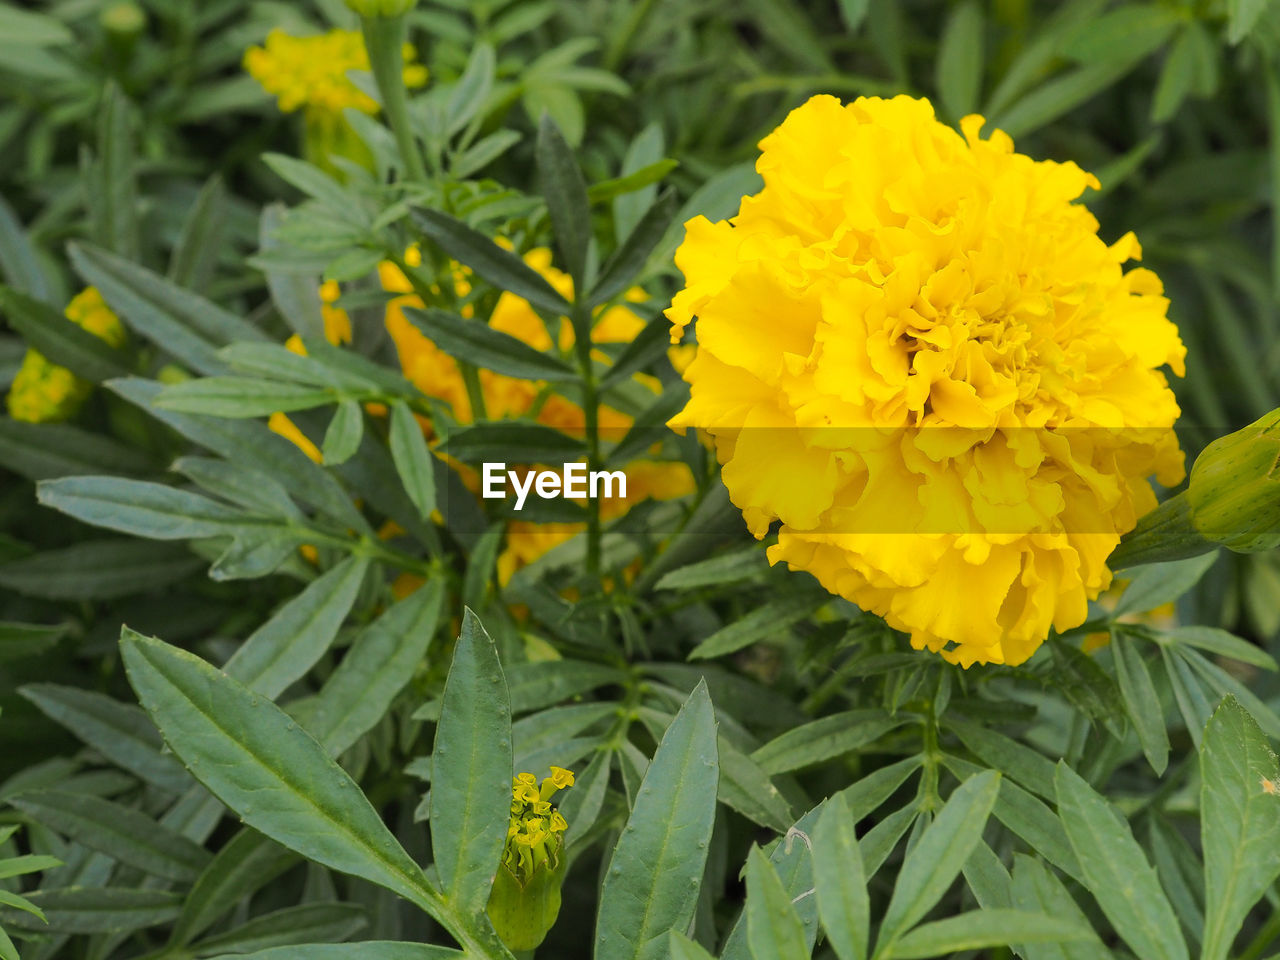 flower, yellow, freshness, fragility, growth, plant, nature, beauty in nature, petal, green color, outdoors, no people, close-up, day, flower head, leaf, blooming, marigold